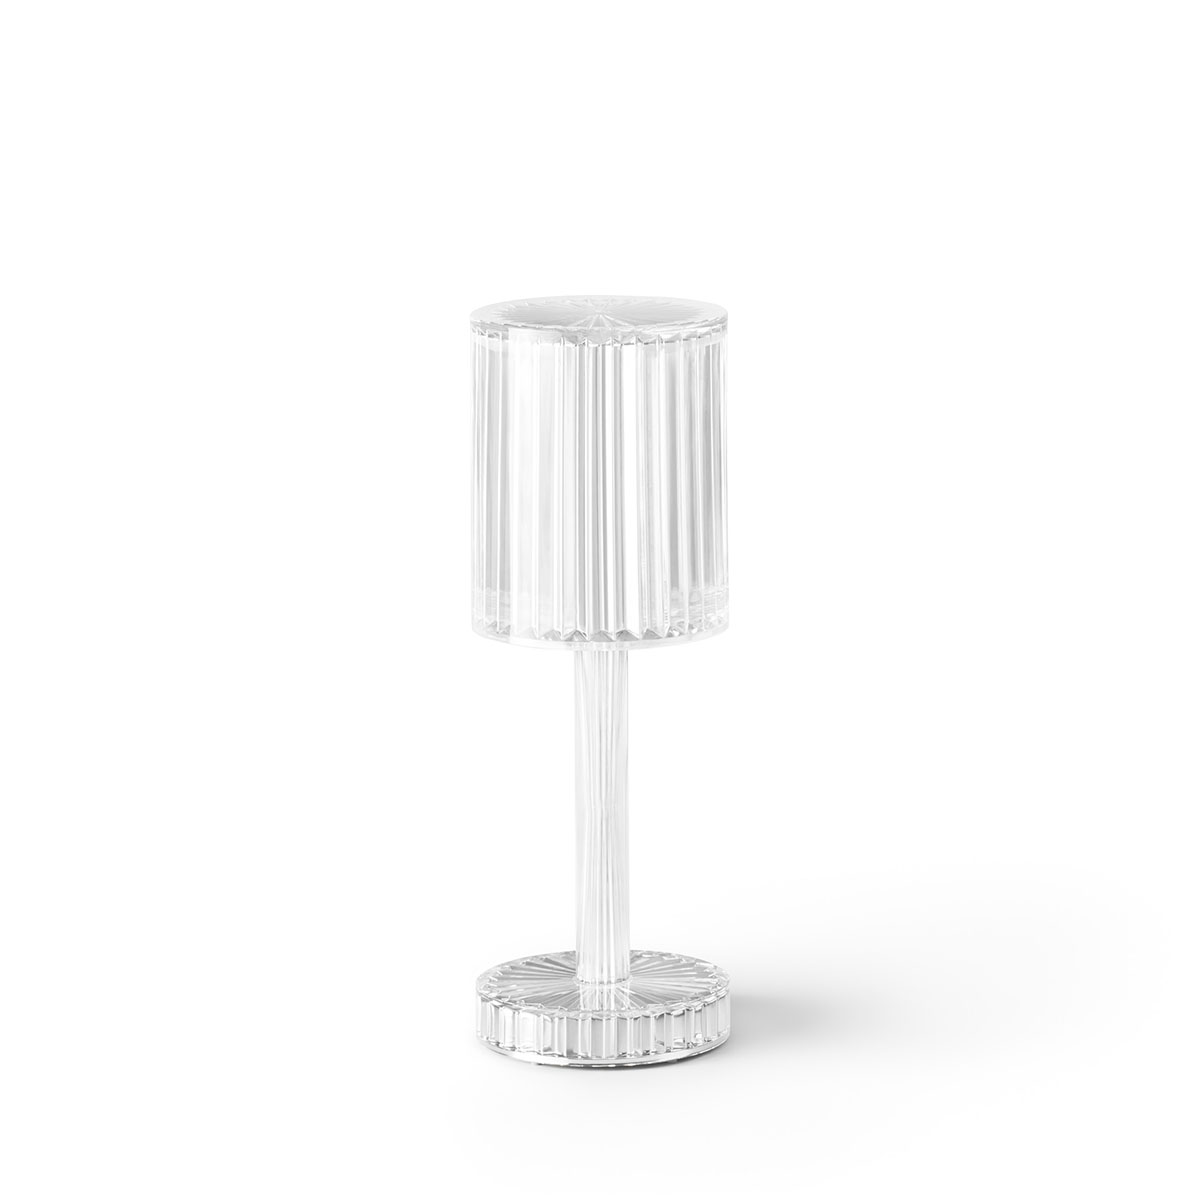 GATSBY_VONDOM_TABLE_LAMP_RAMON_ESTEVE_LUMINARIA_MESA_LAMPARA_2